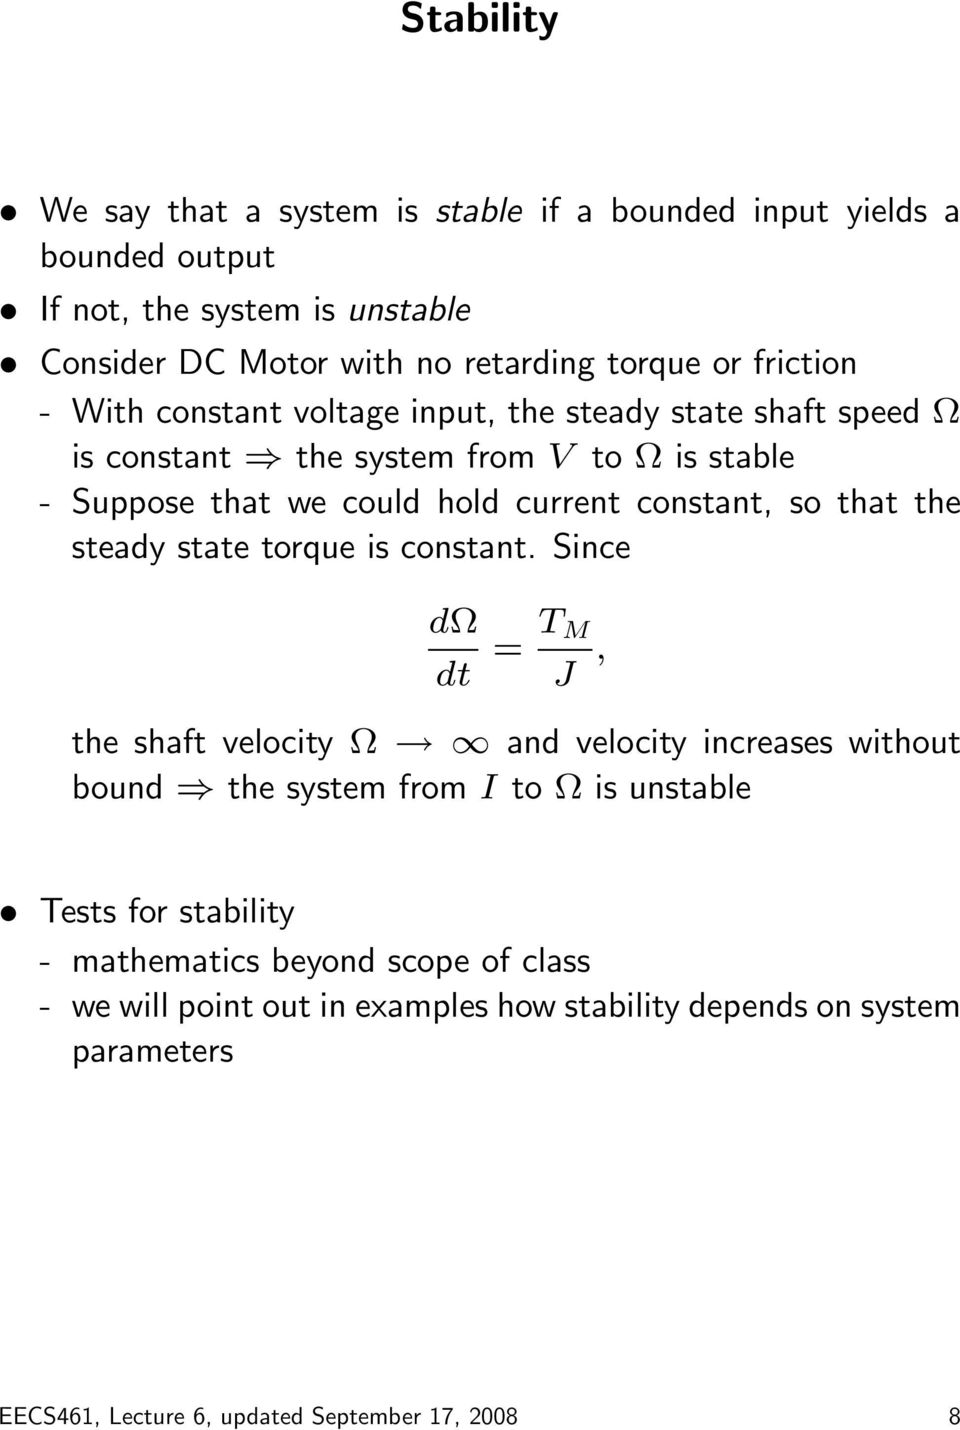 so that the steady state torque is constant.